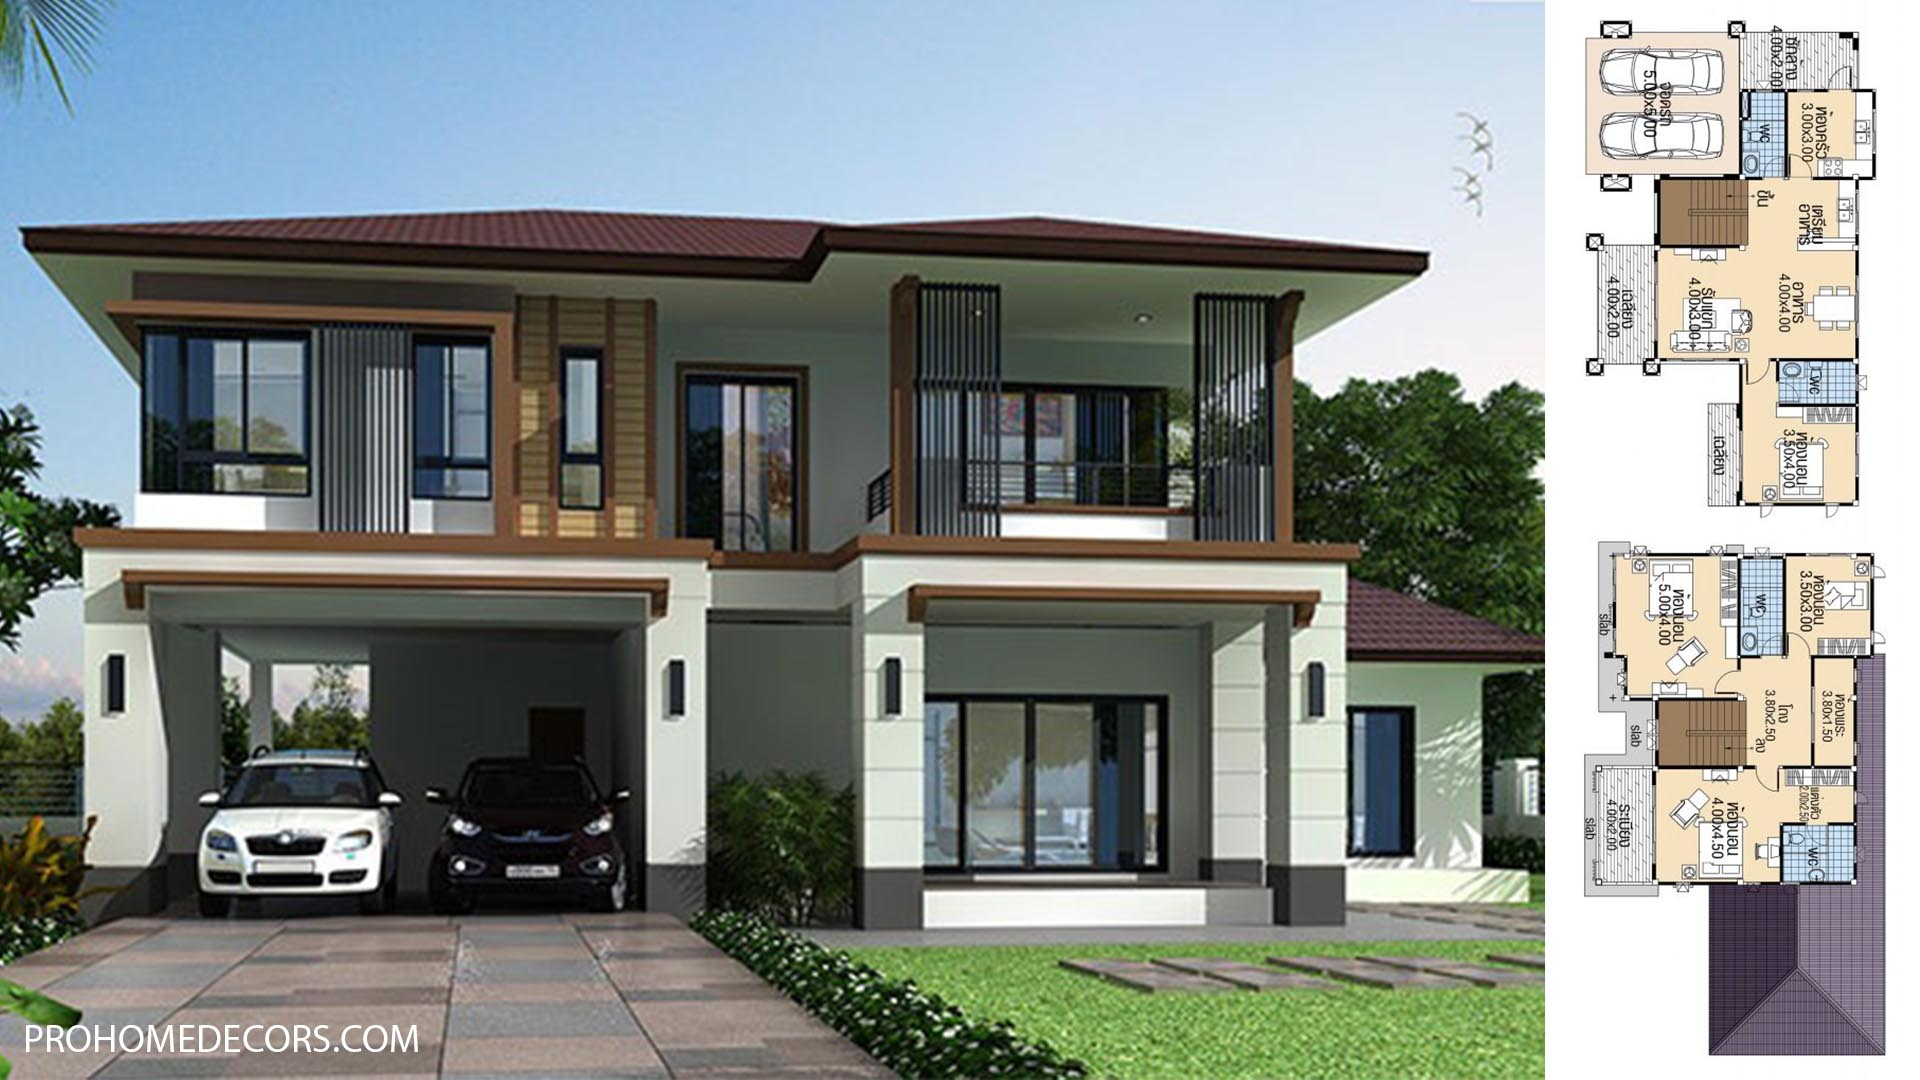 House plans 16.5×9 with 4 Beds